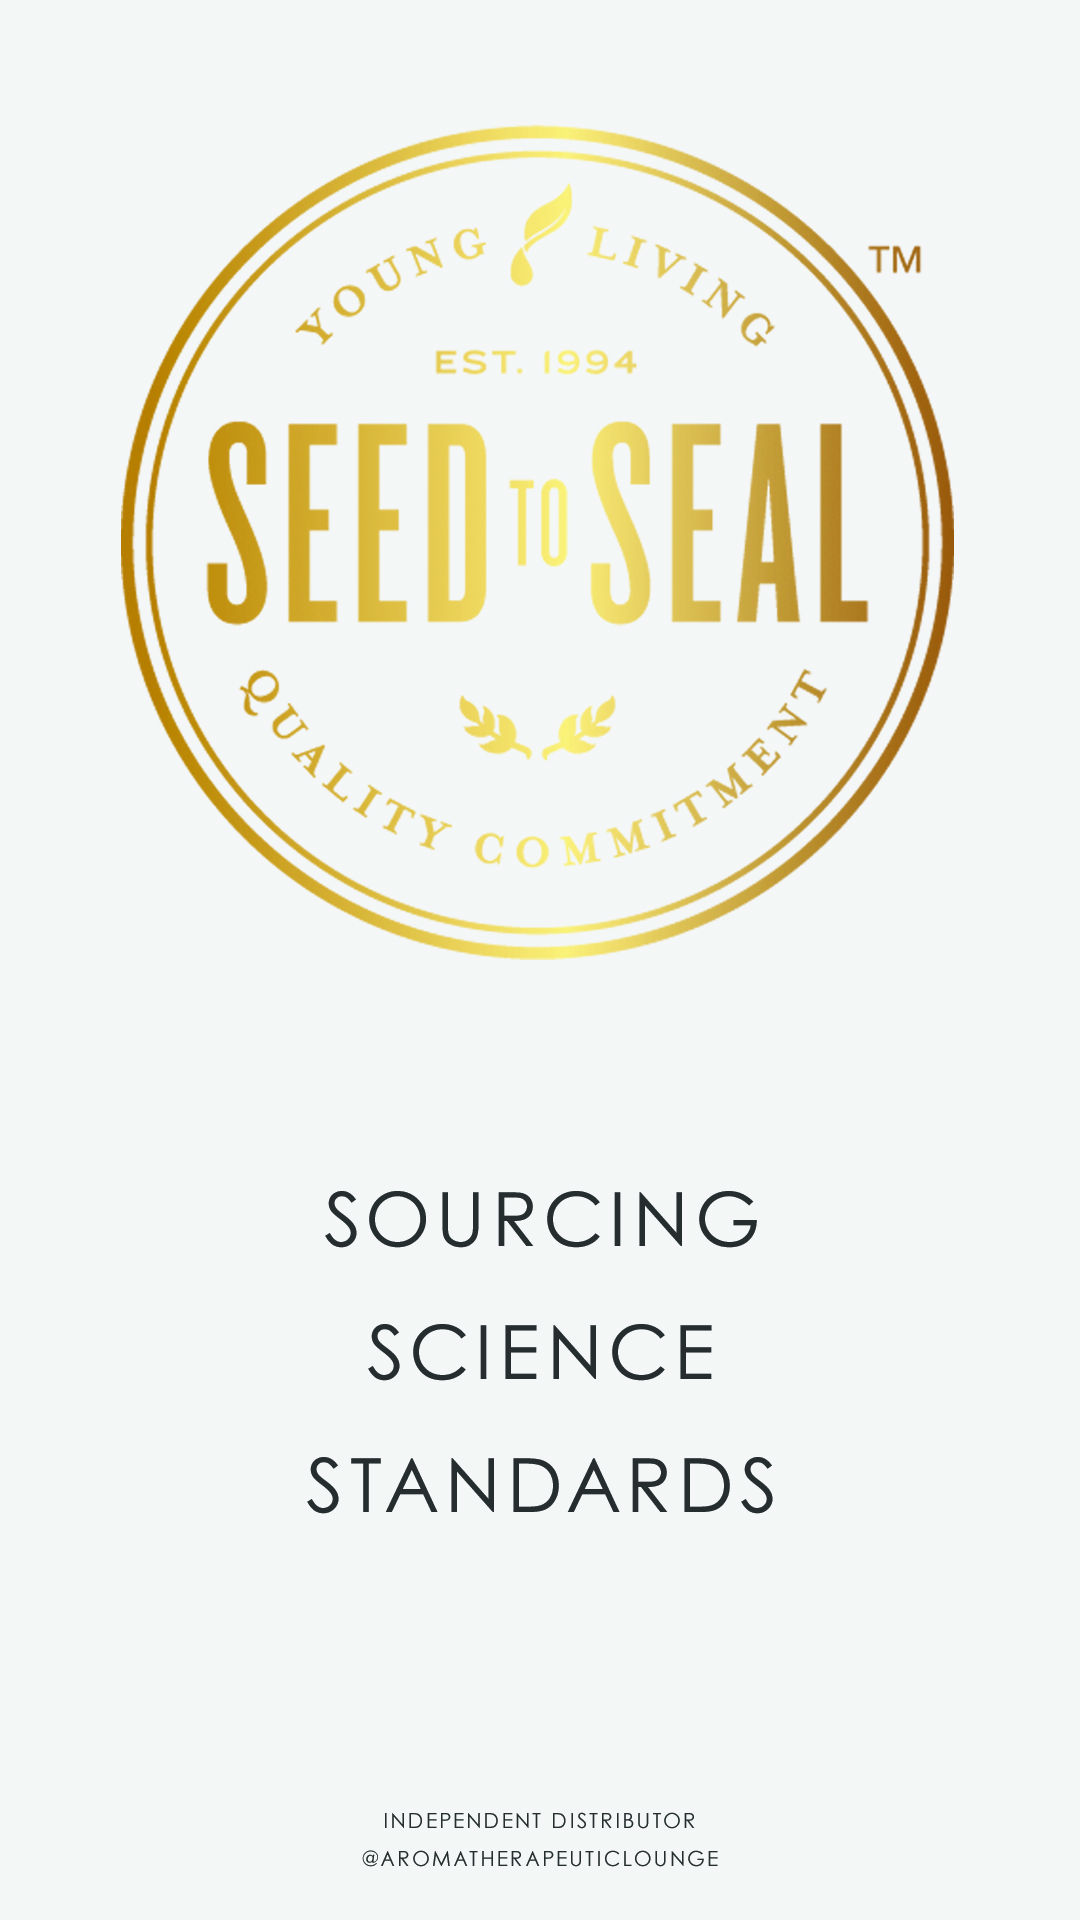 Slide 2_US PSK Story_Seed to Seal.jpg